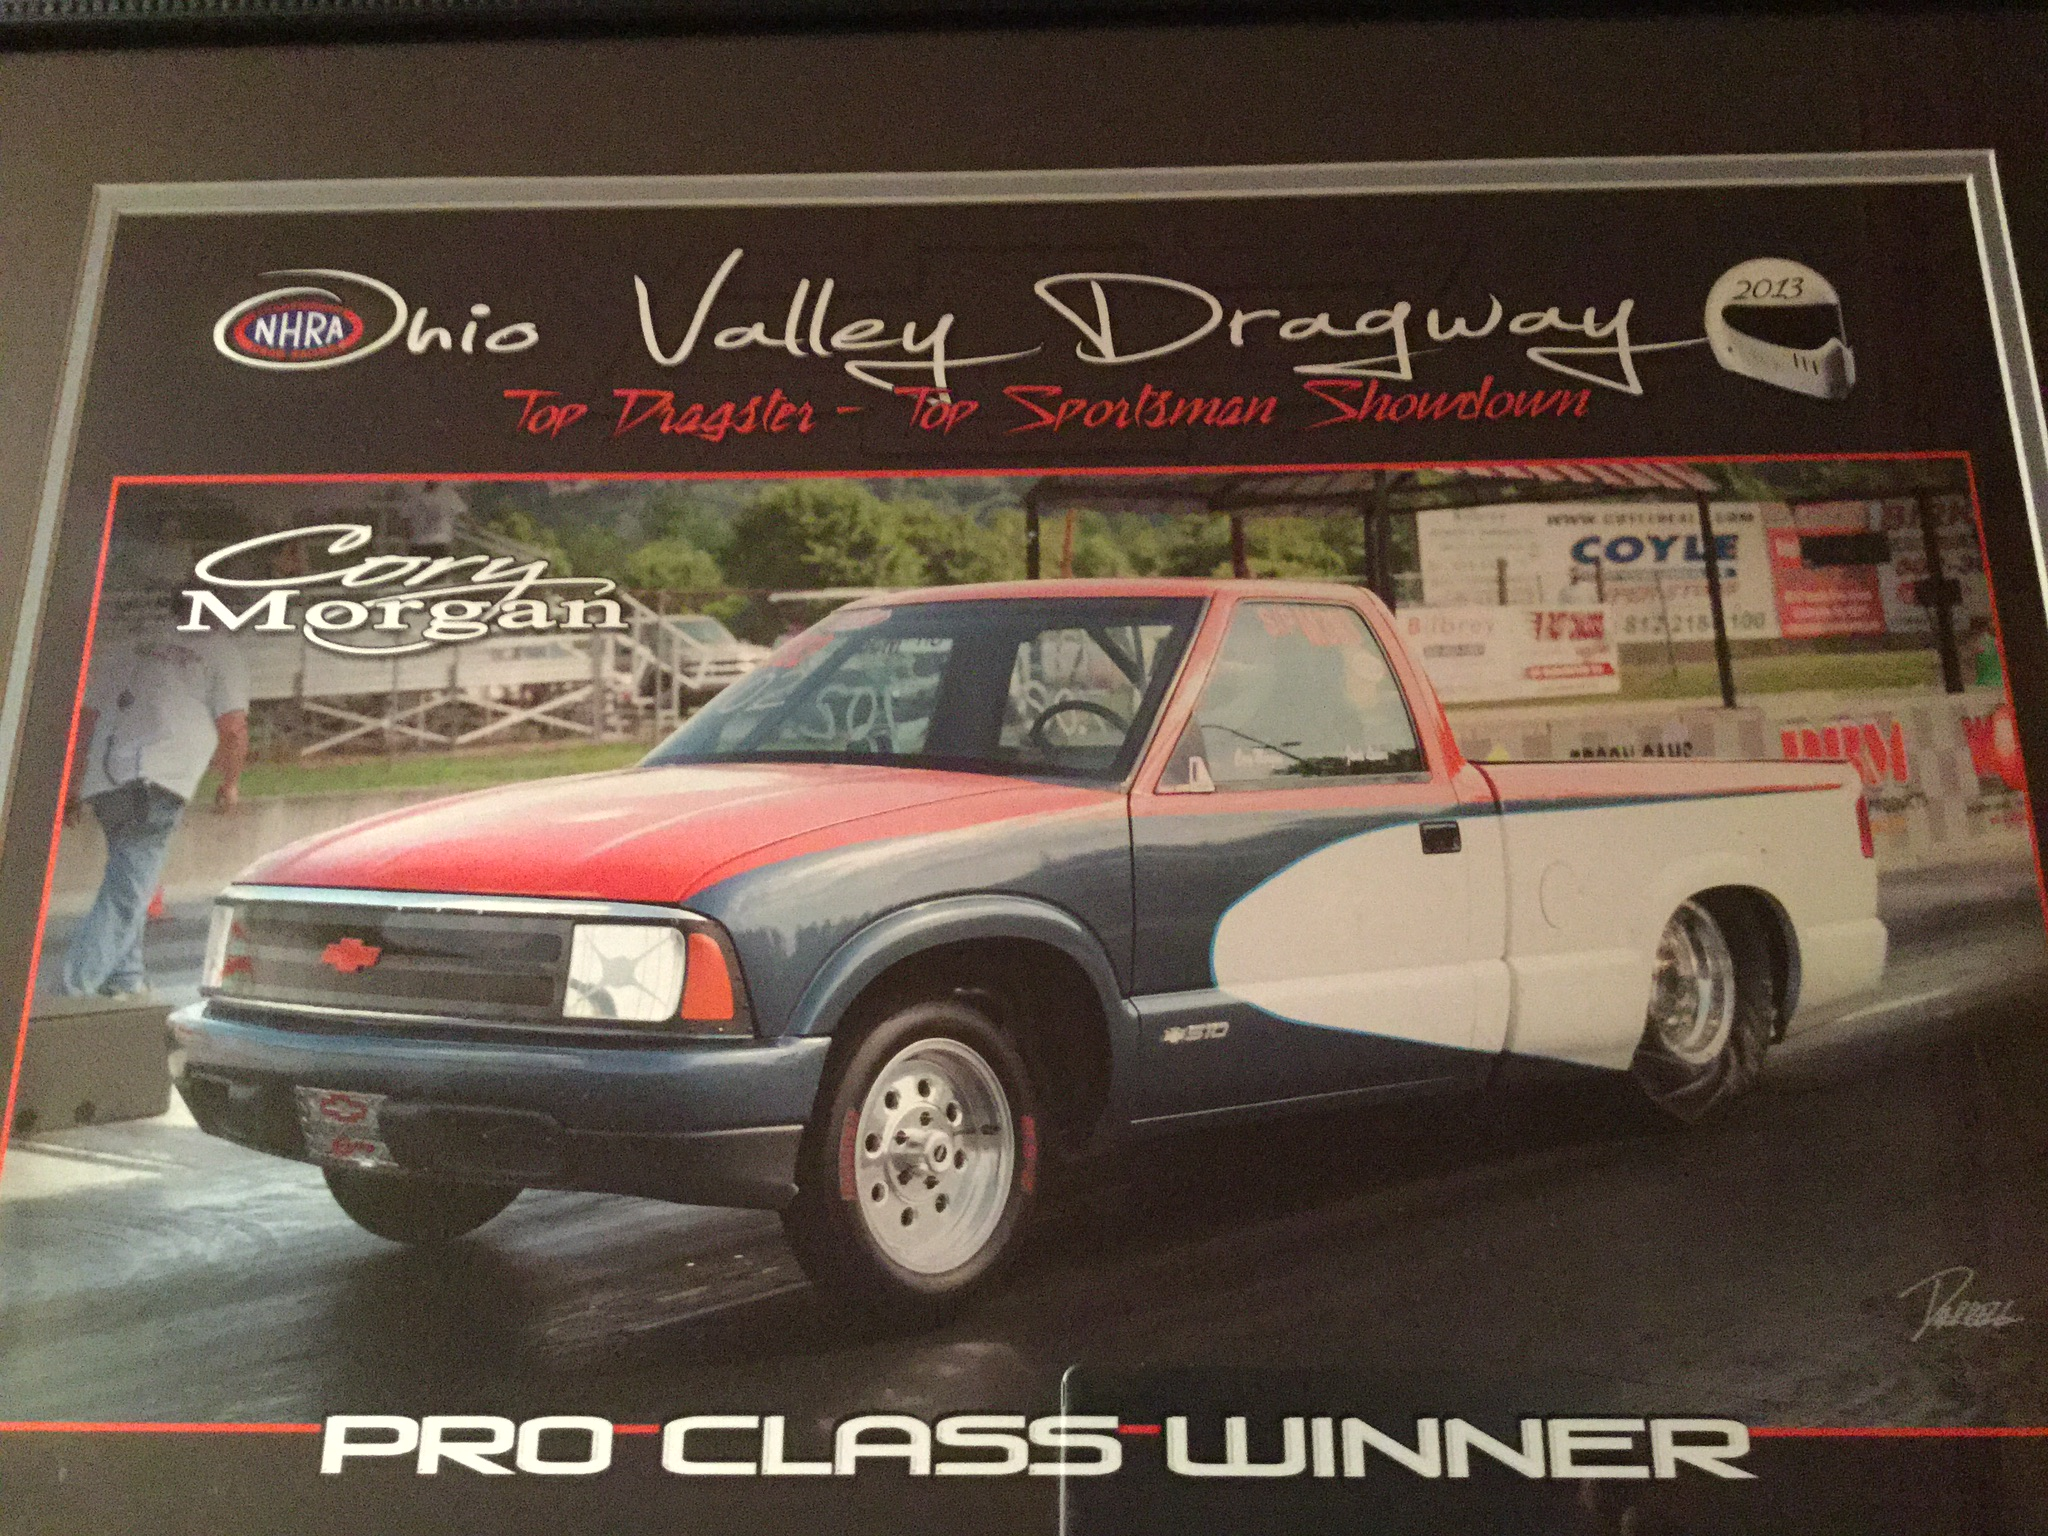 red blue and white 1997 Chevy S10 competing in a drag race in a  frame from Ohio Valley drag way that labels the truck as the pro class winner 2013